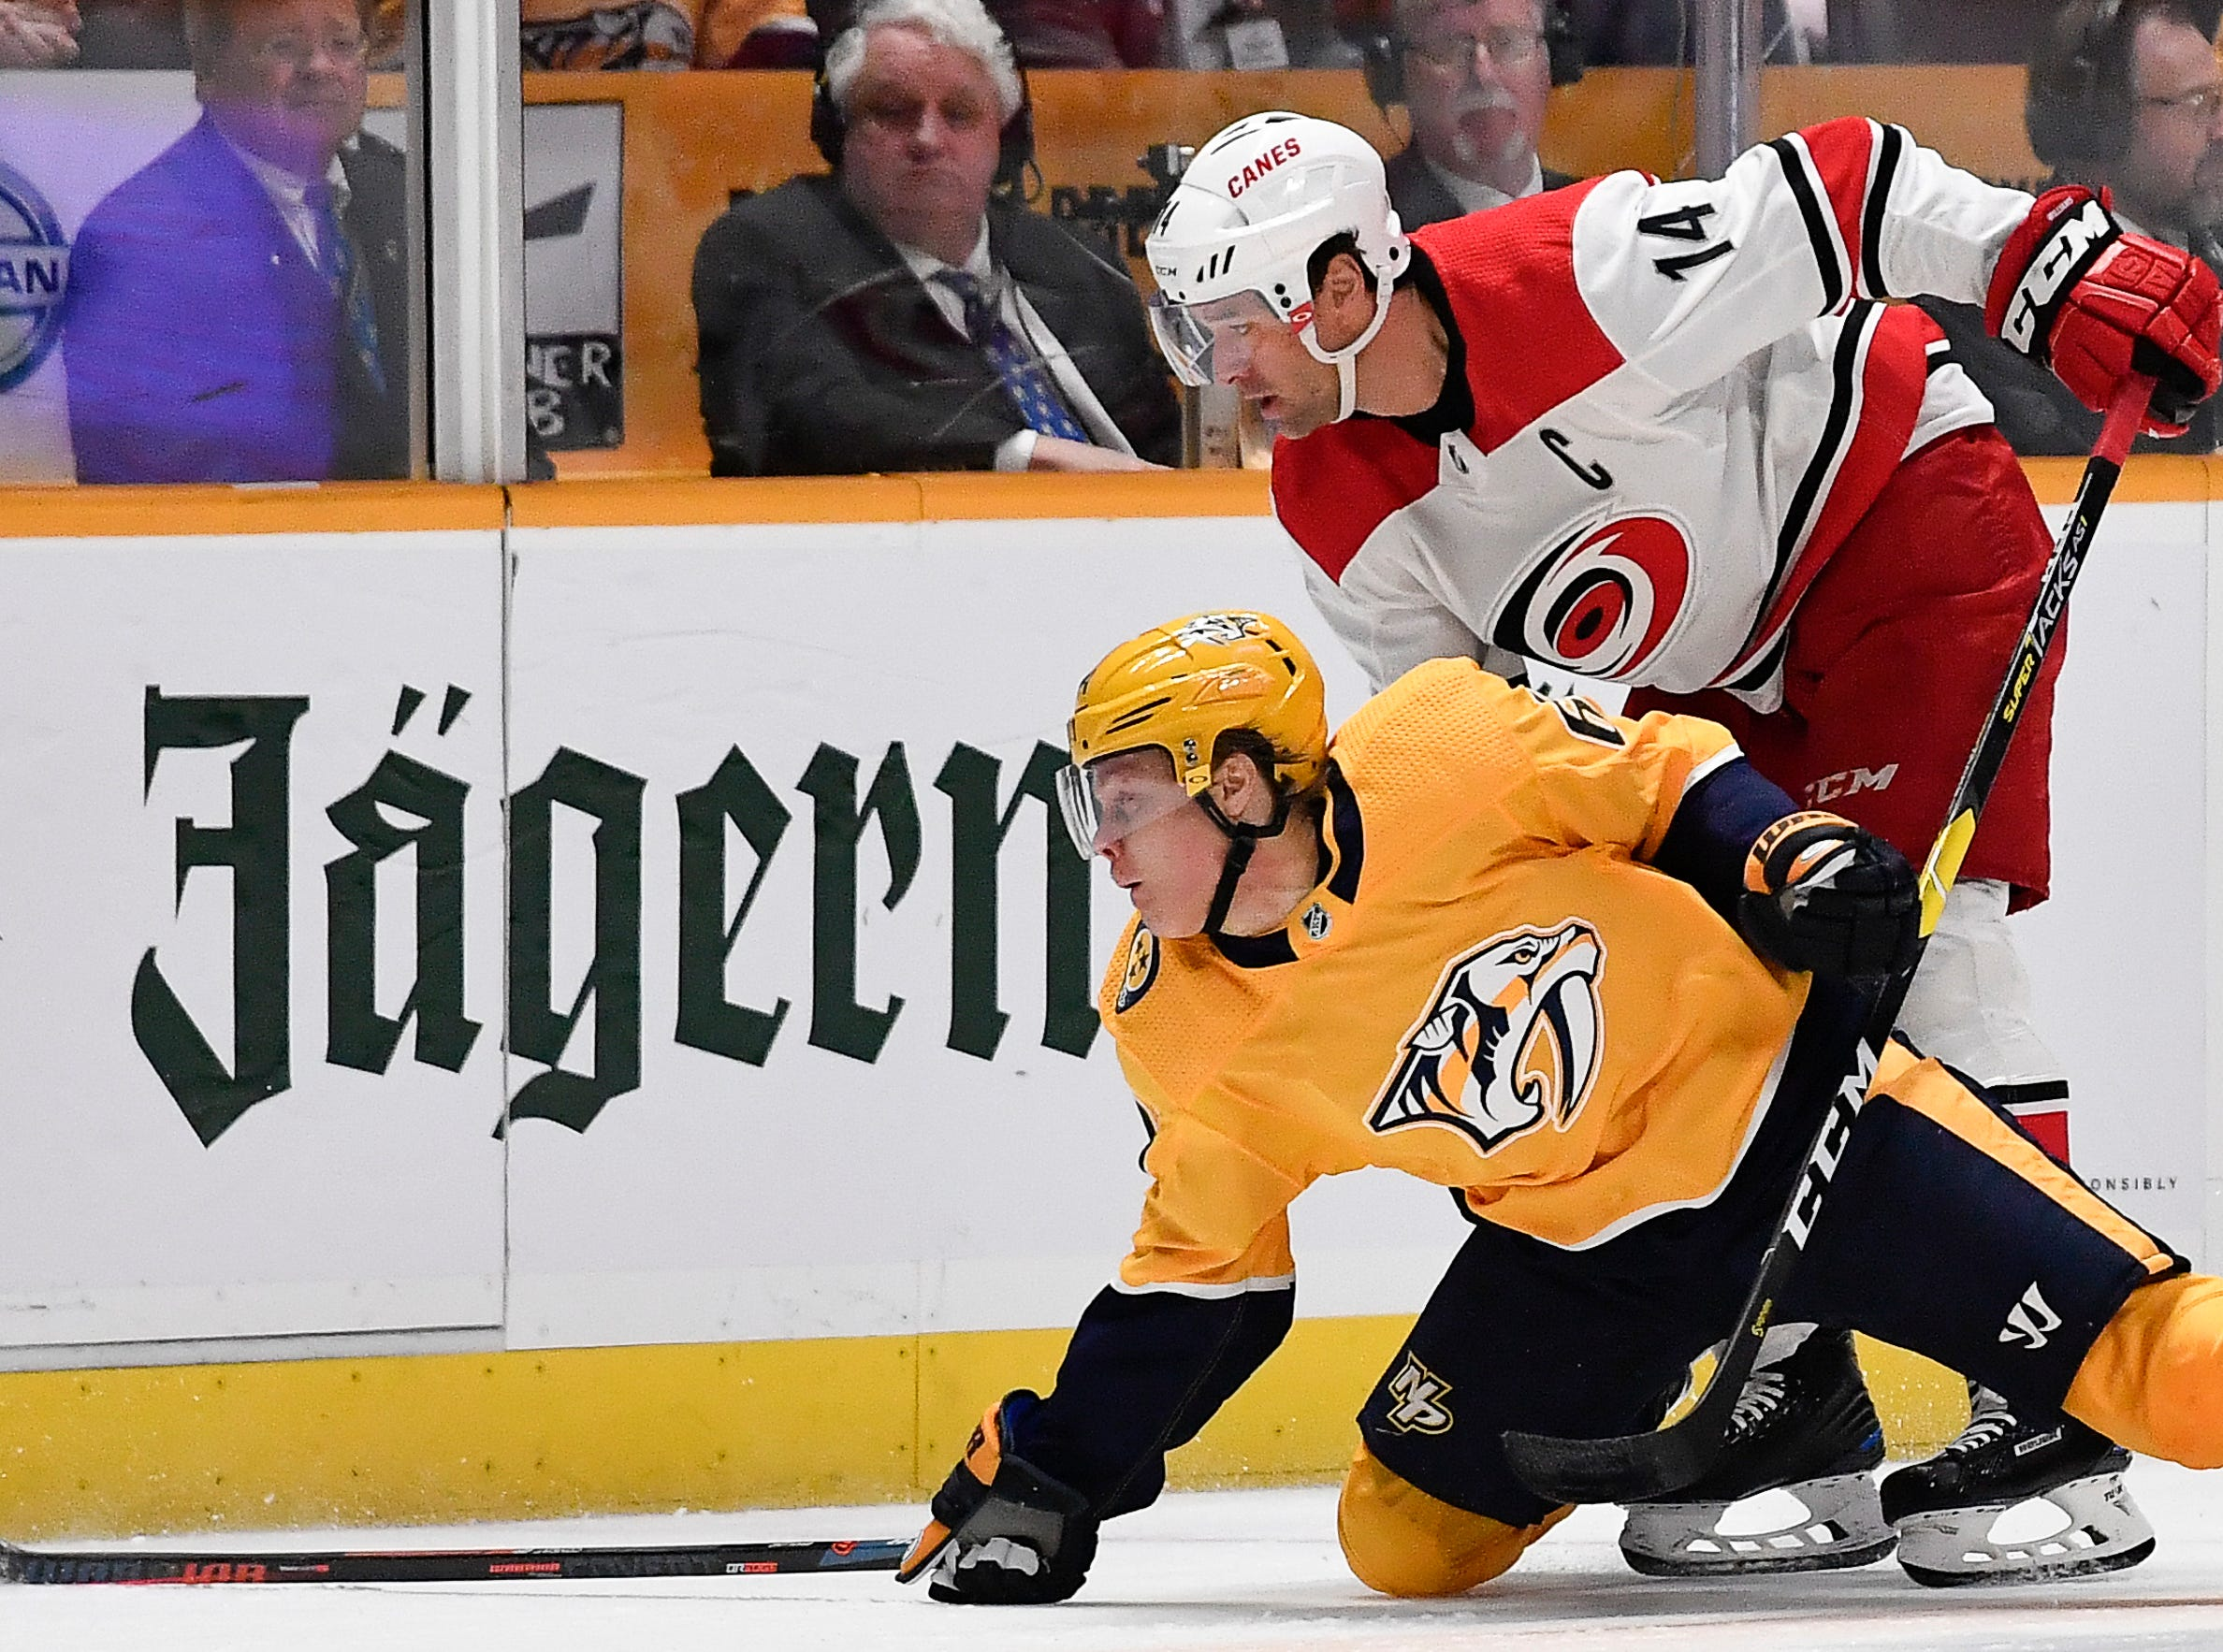 Predators center Mikael Granlund (64) fights Hurricanes right wing Justin Williams (14) for the puck during the first period at Bridgestone Arena Saturday, March 9, 2019 in Nashville, Tenn.